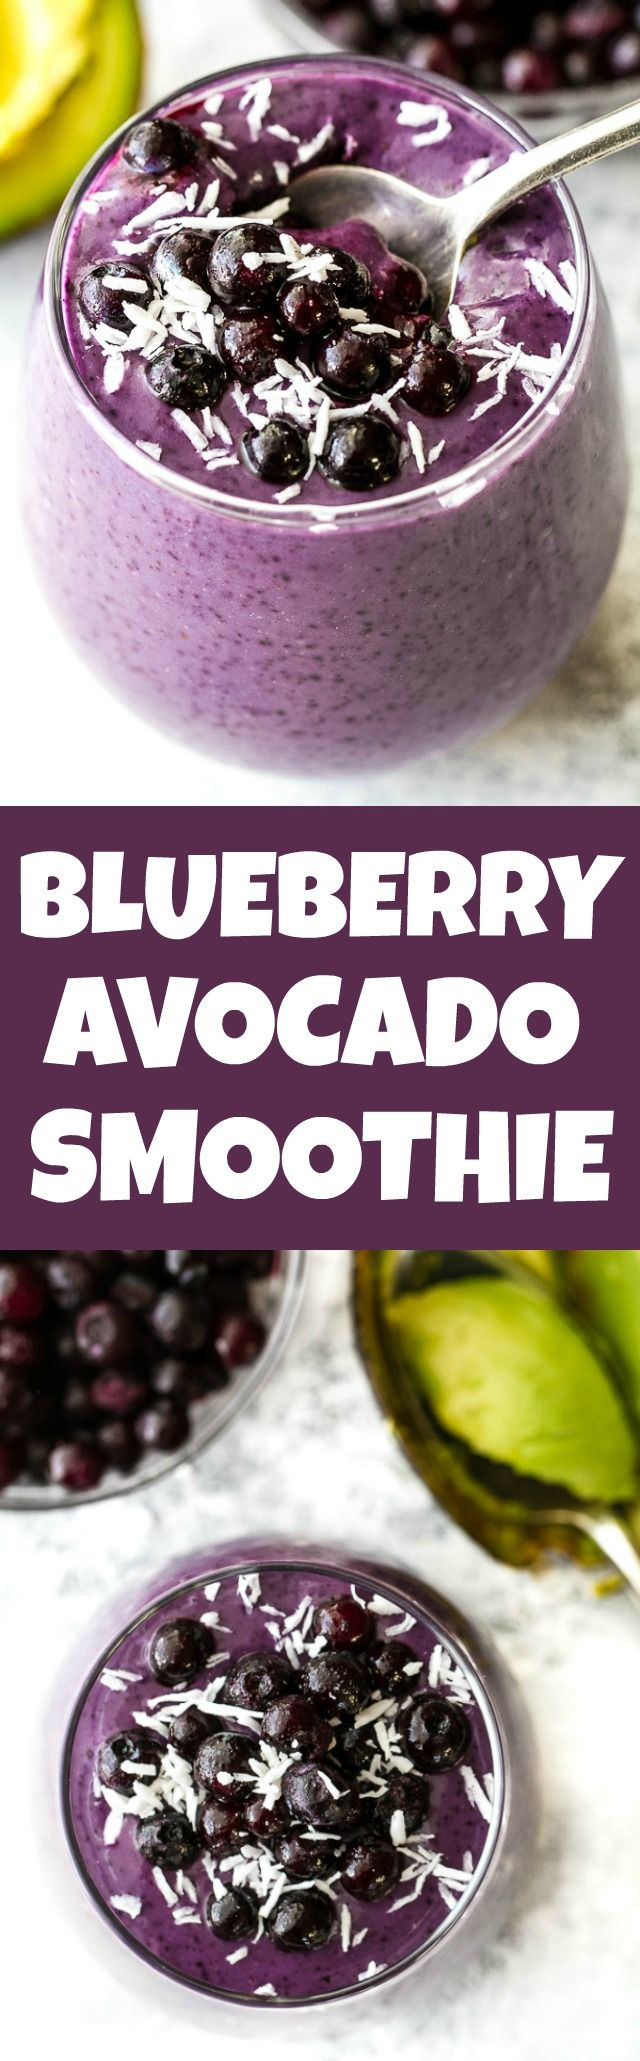 This super creamy blueberry avocado smoothie is packed with protein, healthy fats, vitamins and antioxidants. Gluten-free and easily made vegan, it makes a healthy and delicious breakfast or snack   r